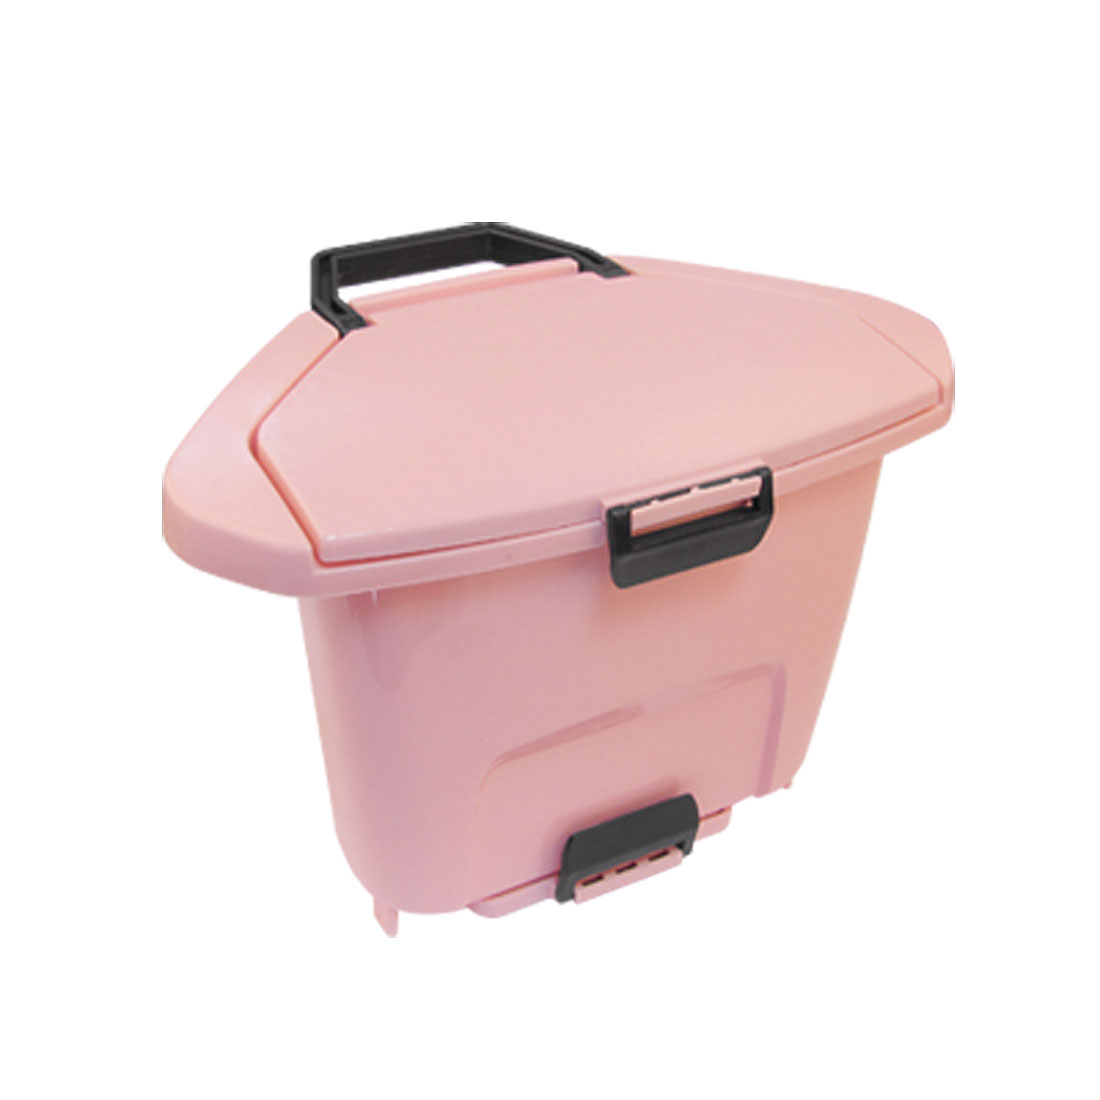 Home Kitchen Plastic Trashcan Dustbin Pink w Suction Cup